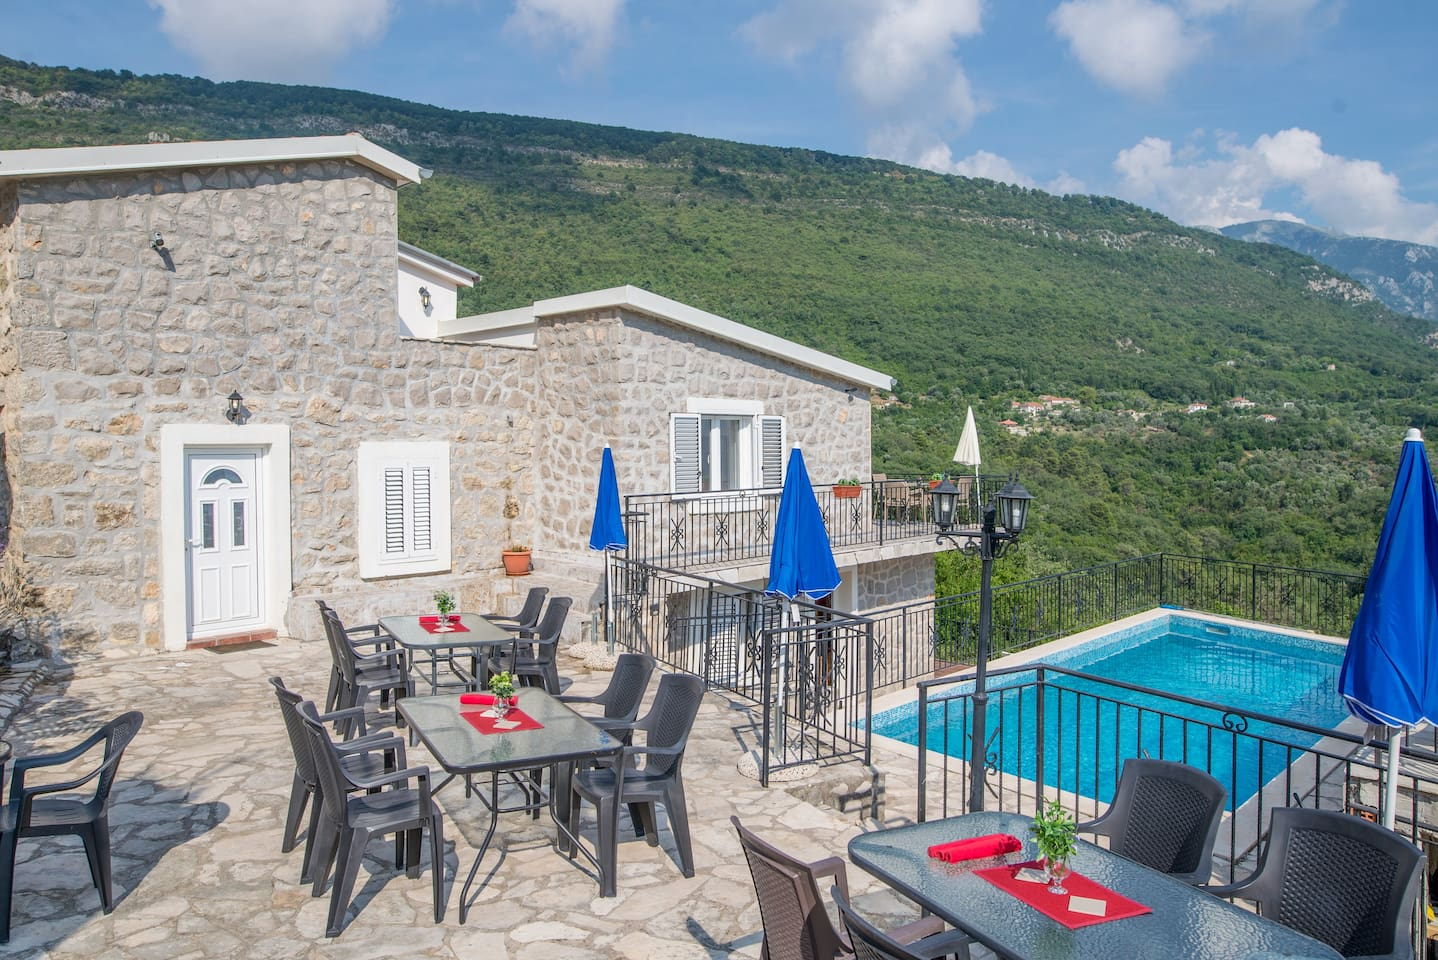 Palmagora apartments, pool and communal areas nestling among mountains